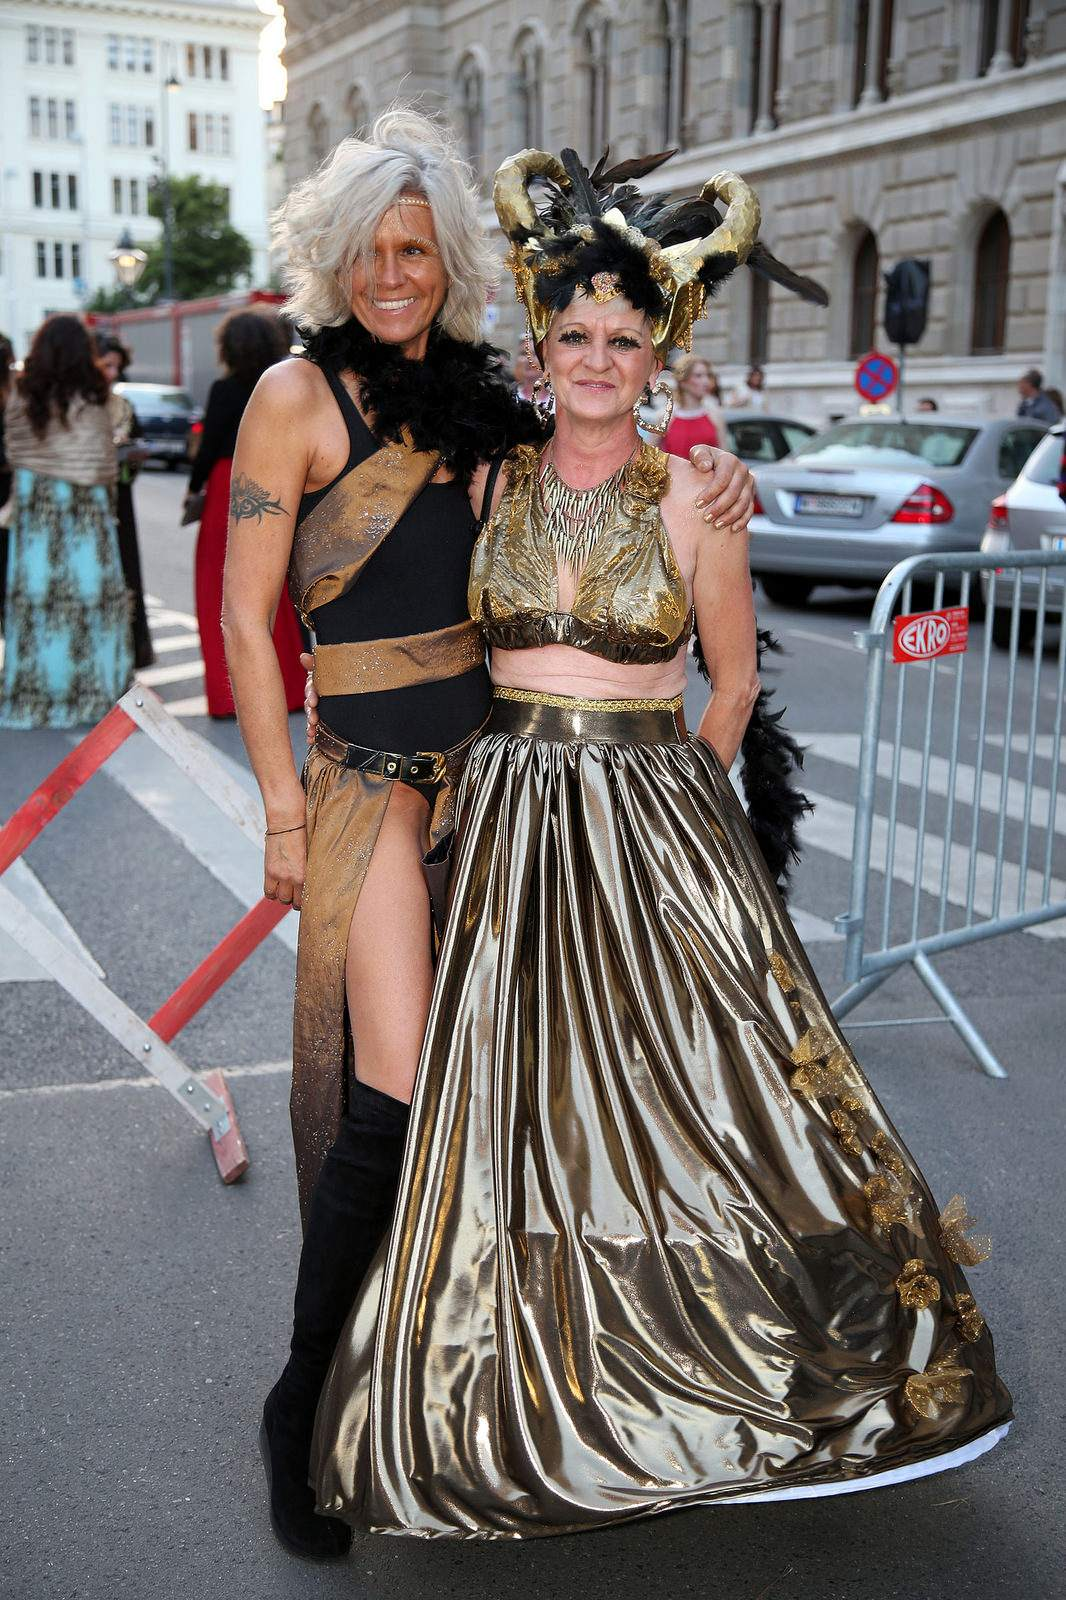 life ball23 Life Ball 2015 in Wien